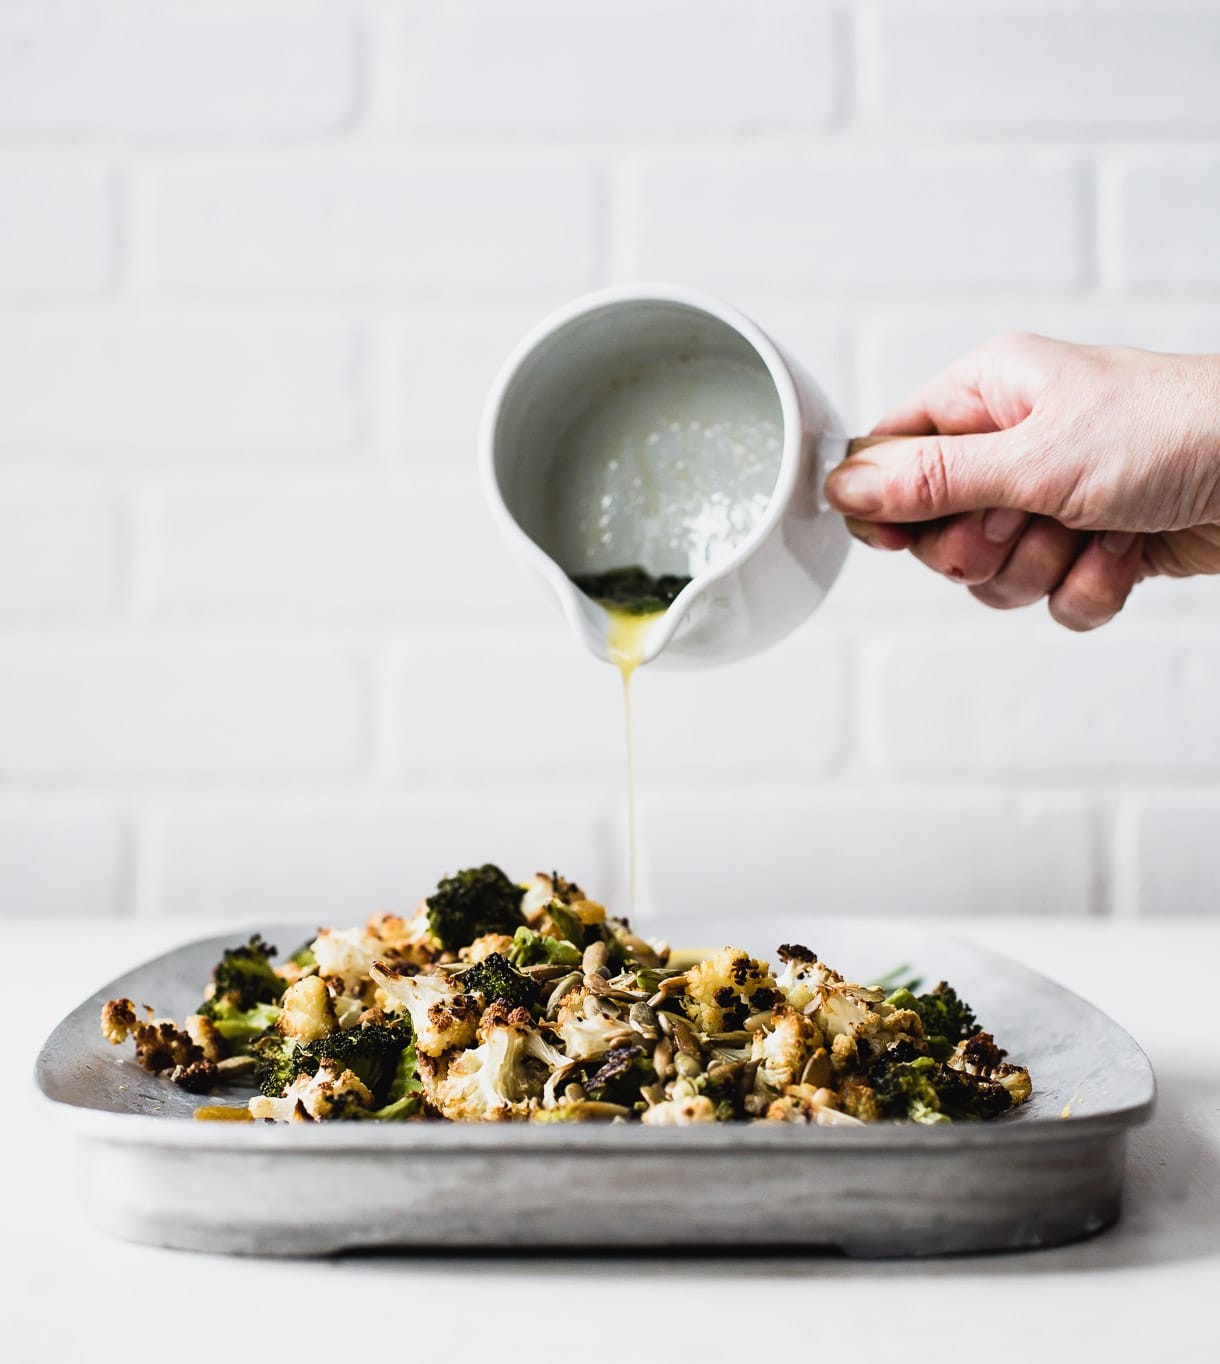 Roasted Broccoli and Cauliflower Salad with Sage Butter